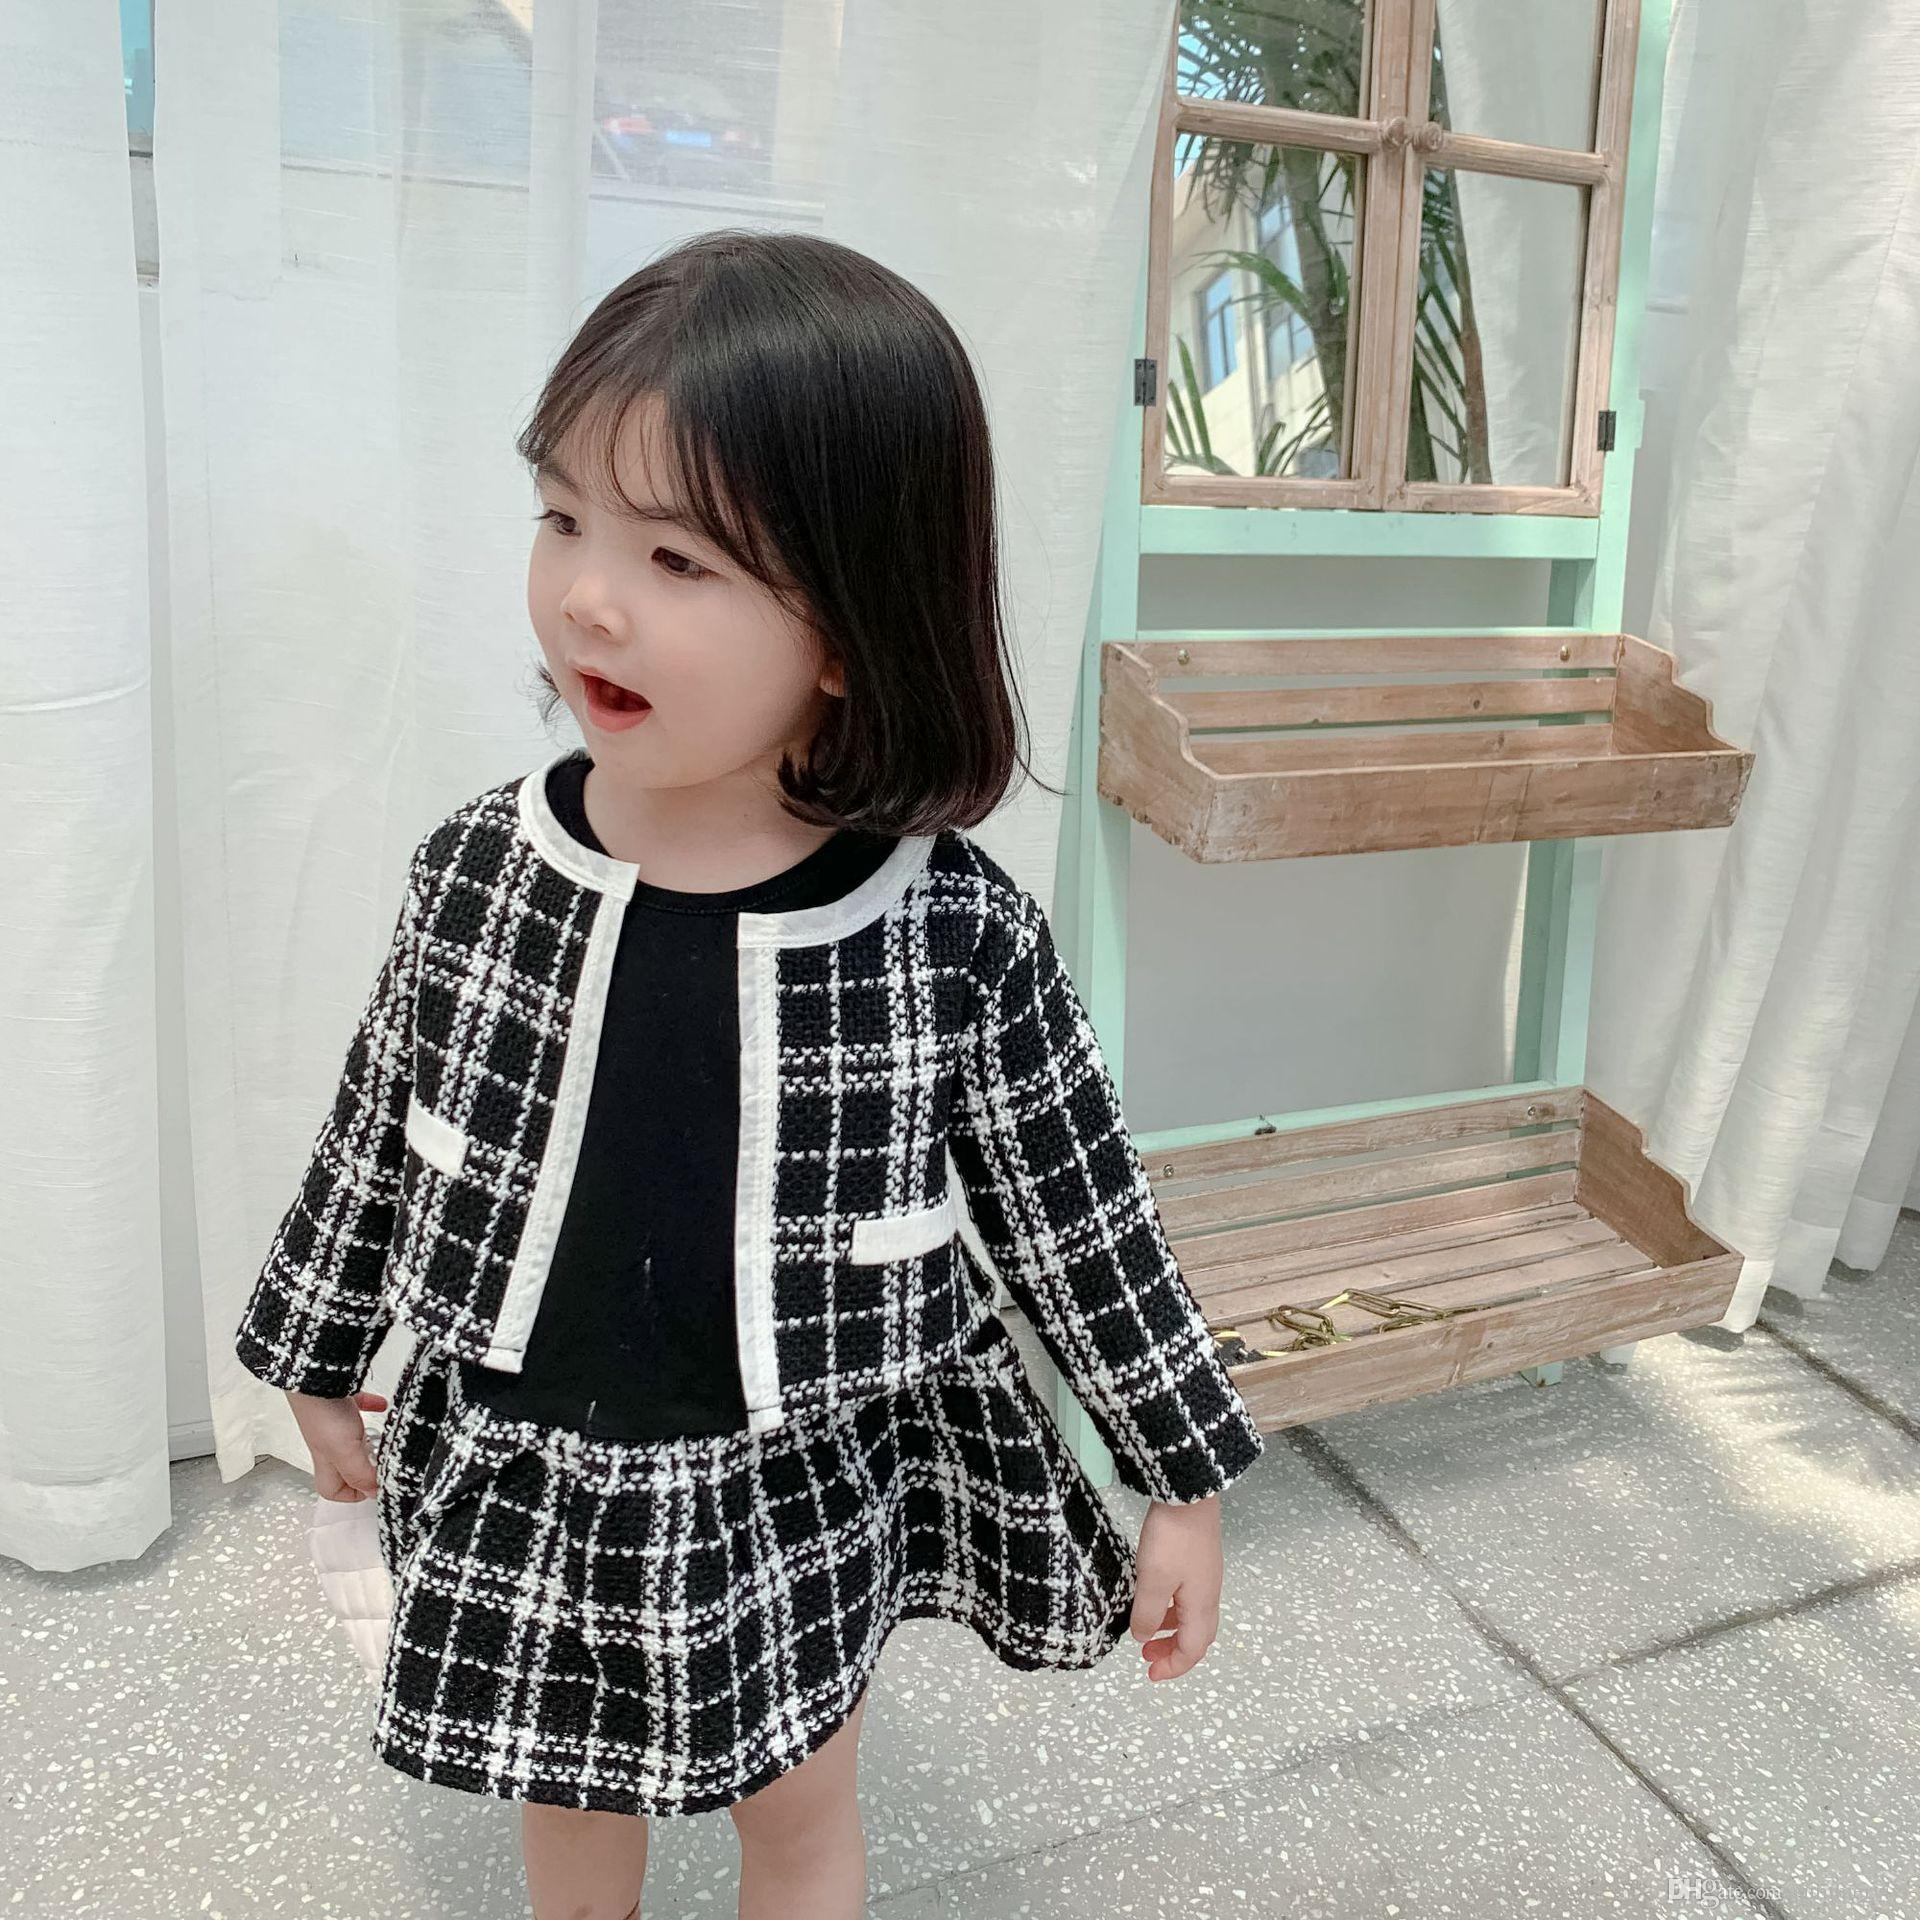 Lady style children princess outfits fall kids long sleeve splicing plaid dress+lattice blazers outwear 2pcs sets baby girl clothes F9575